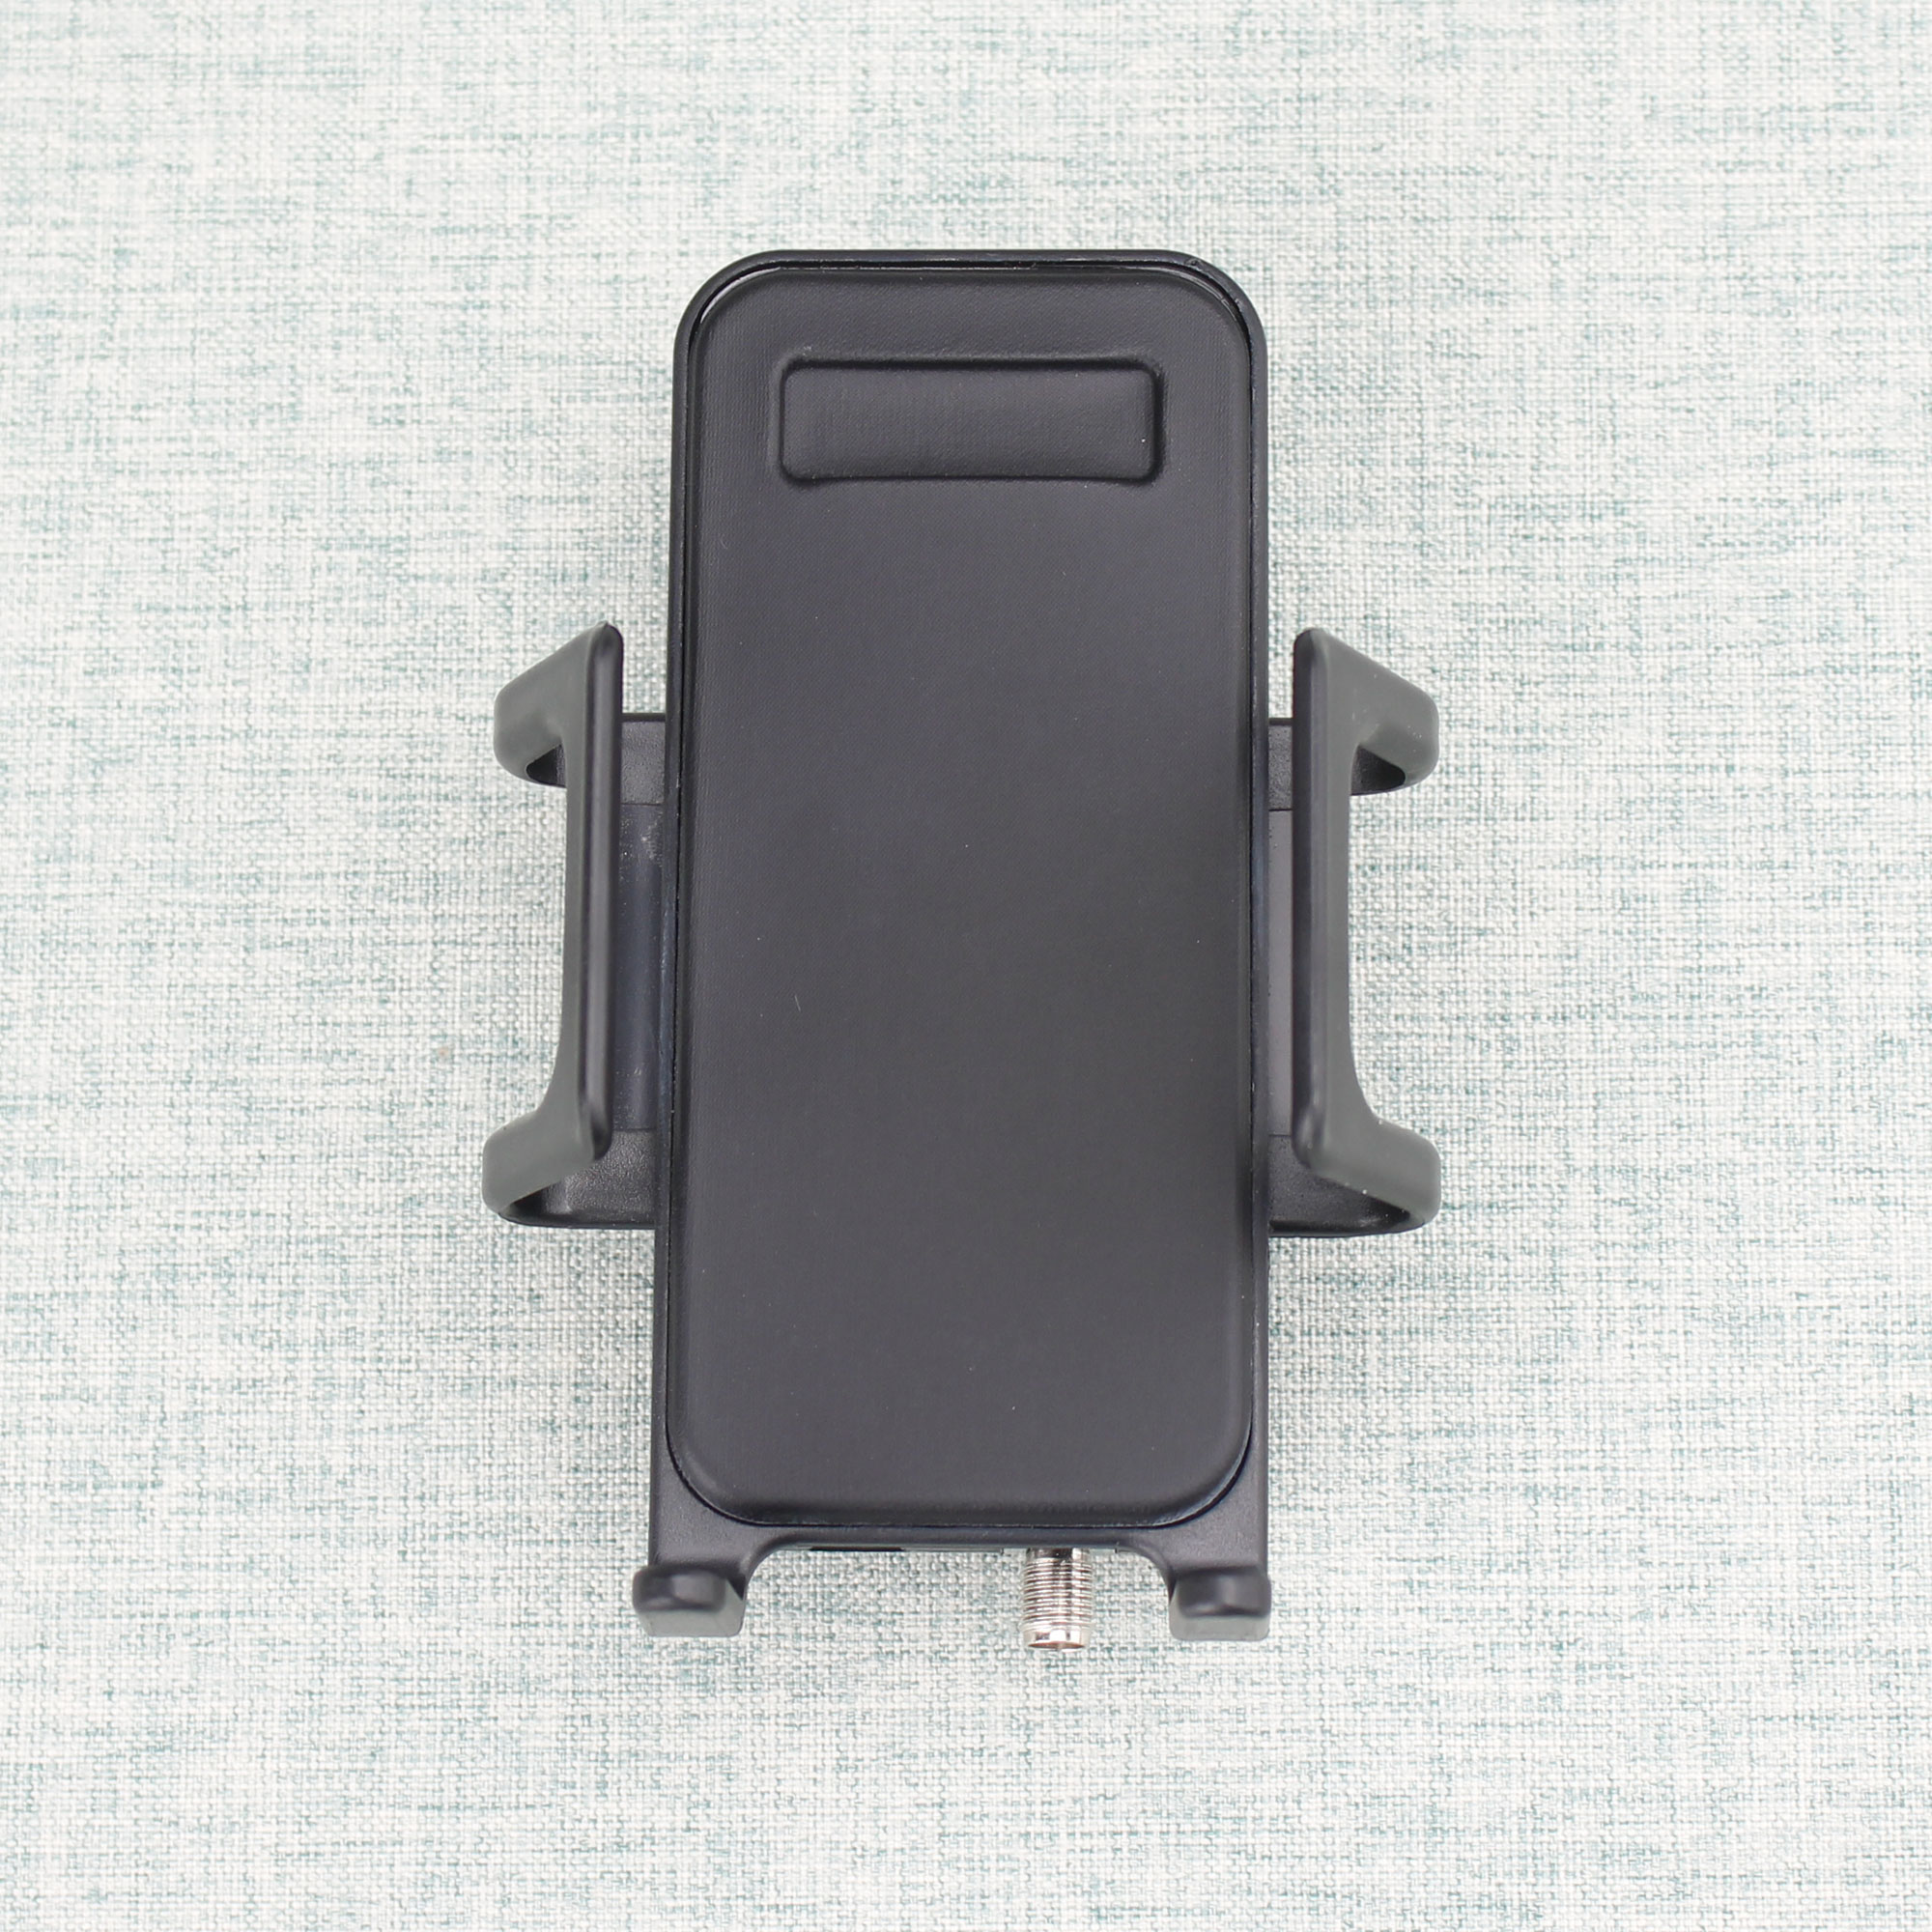 Cell Phone Holder UMTS WCDMA 2100Mhz Cell Phone Signal Booster Repeater AmplifierCell Phone Holder UMTS WCDMA 2100Mhz Cell Phone Signal Booster Repeater Amplifier